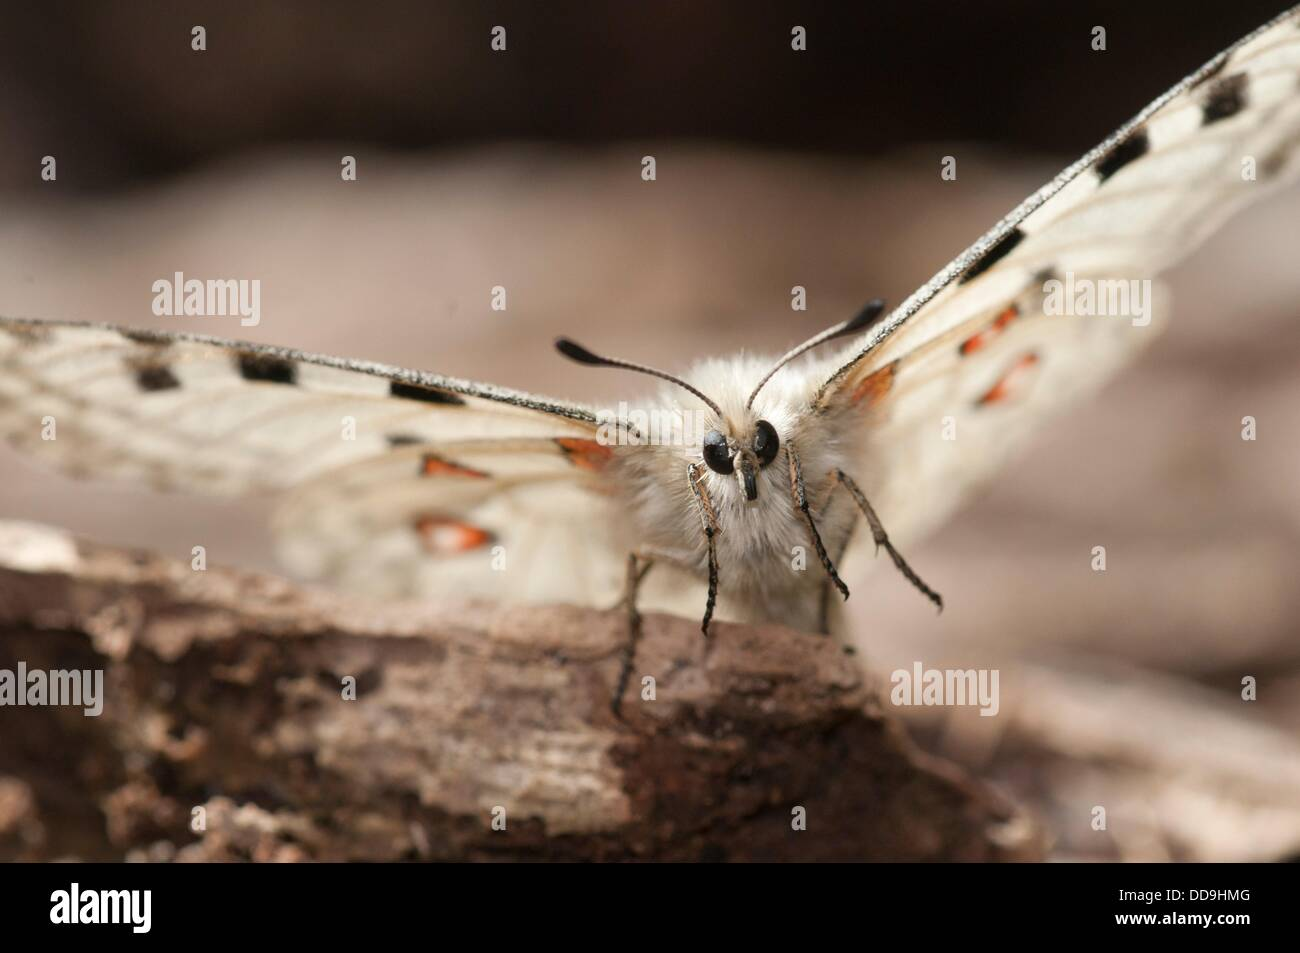 Parnassius apollo is in Southern Europe confined to high mountain areas mostly in the Pyrenees where it was confined - Stock Image